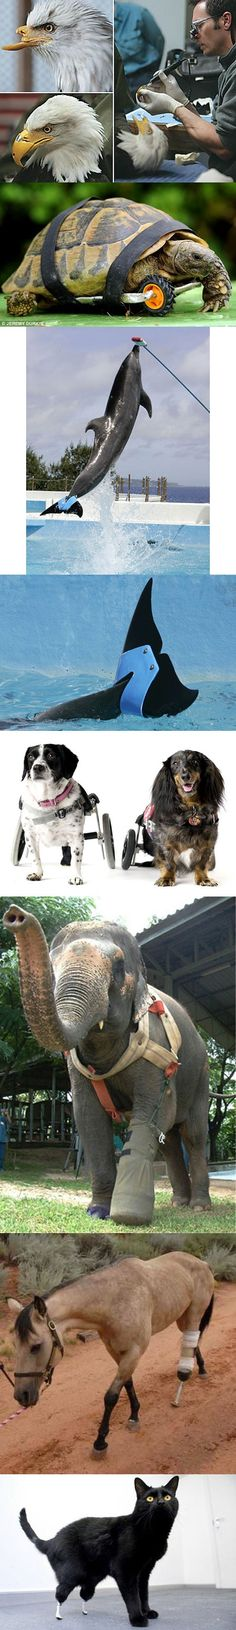 Awesome . . .my pup is now handicapped so I feel for these animals